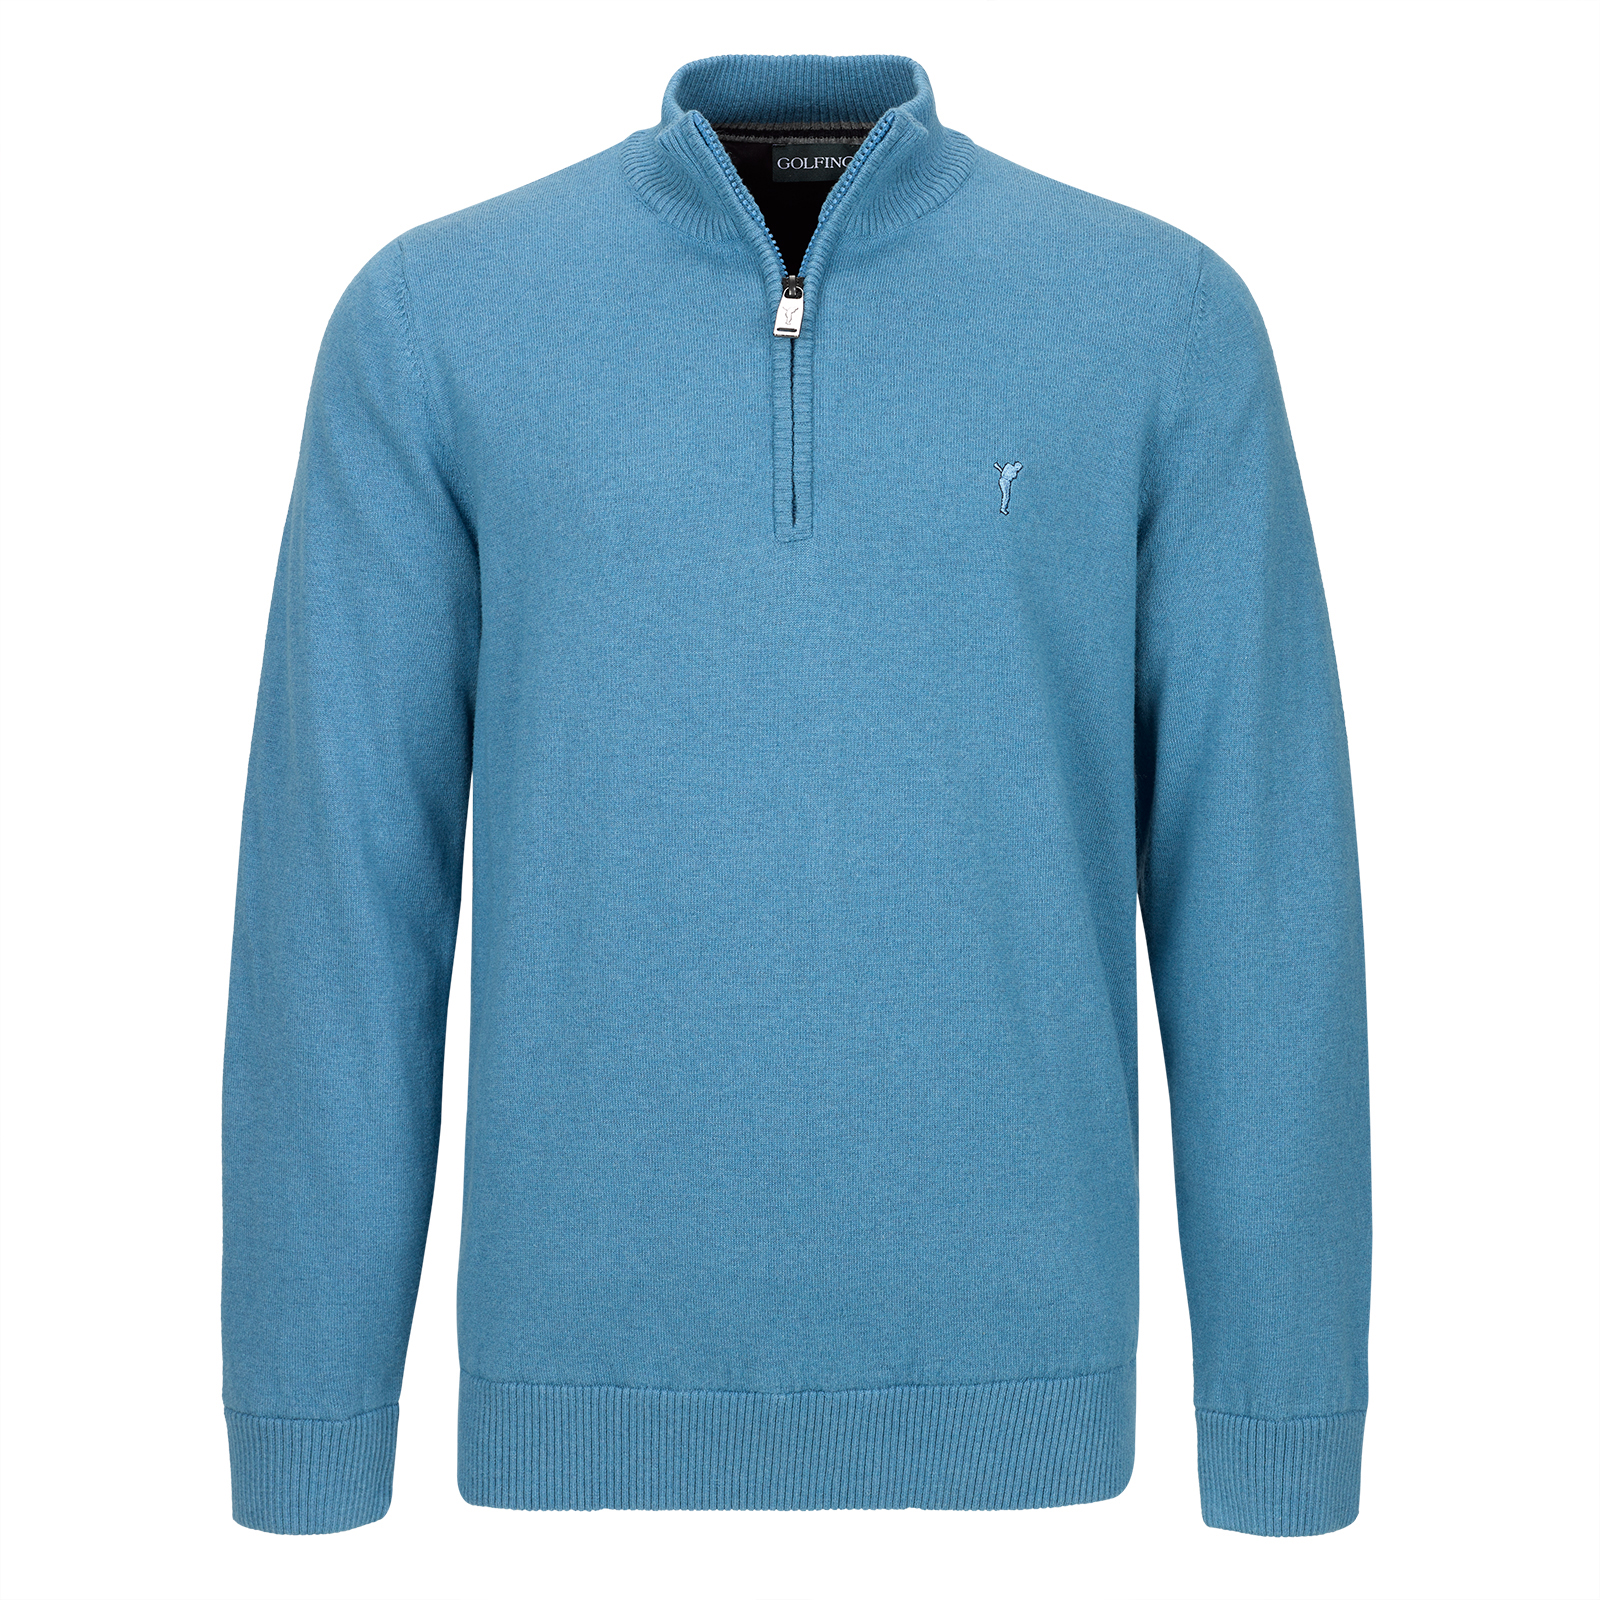 Men's windstopper golf troyer from exclusive Merino blend in regular fit